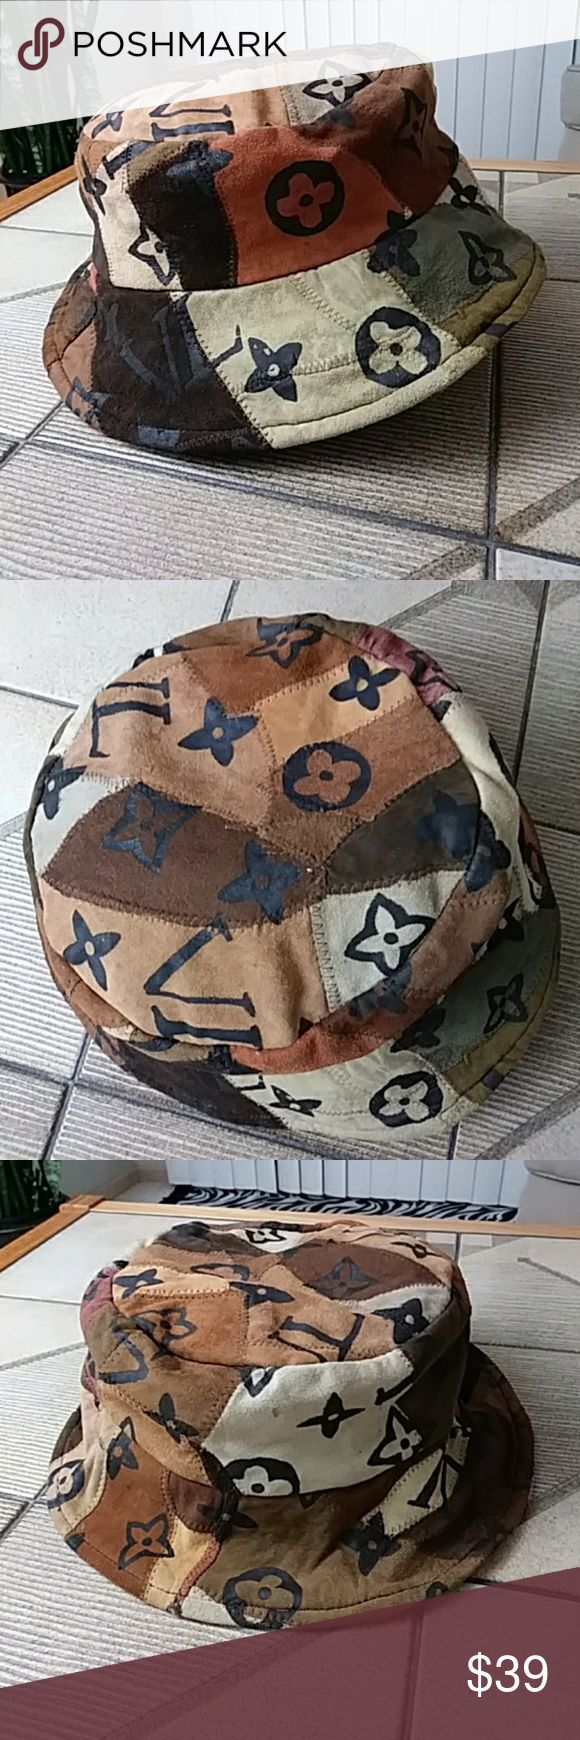 "Just in! Suede Patchwork Bucket Hat Unisex Patchwork Suede Bucket Hat. This one has character! Perfect for fall wear. Fully lined, 2.75"" brim. Preloved; a few spots or marks (please see photos), yet overall in excellent preowned condition. No rips, holes or tears. Brown, tan, camel, avocado and army green, cream, burnt orange, port wine, black. One size.  Approx 23.75"" circumference     Search Enhance: Bohemian, Boho, Retro, Louis Vuitton, Vintage, Cap, Accessories. Accessories Hats"